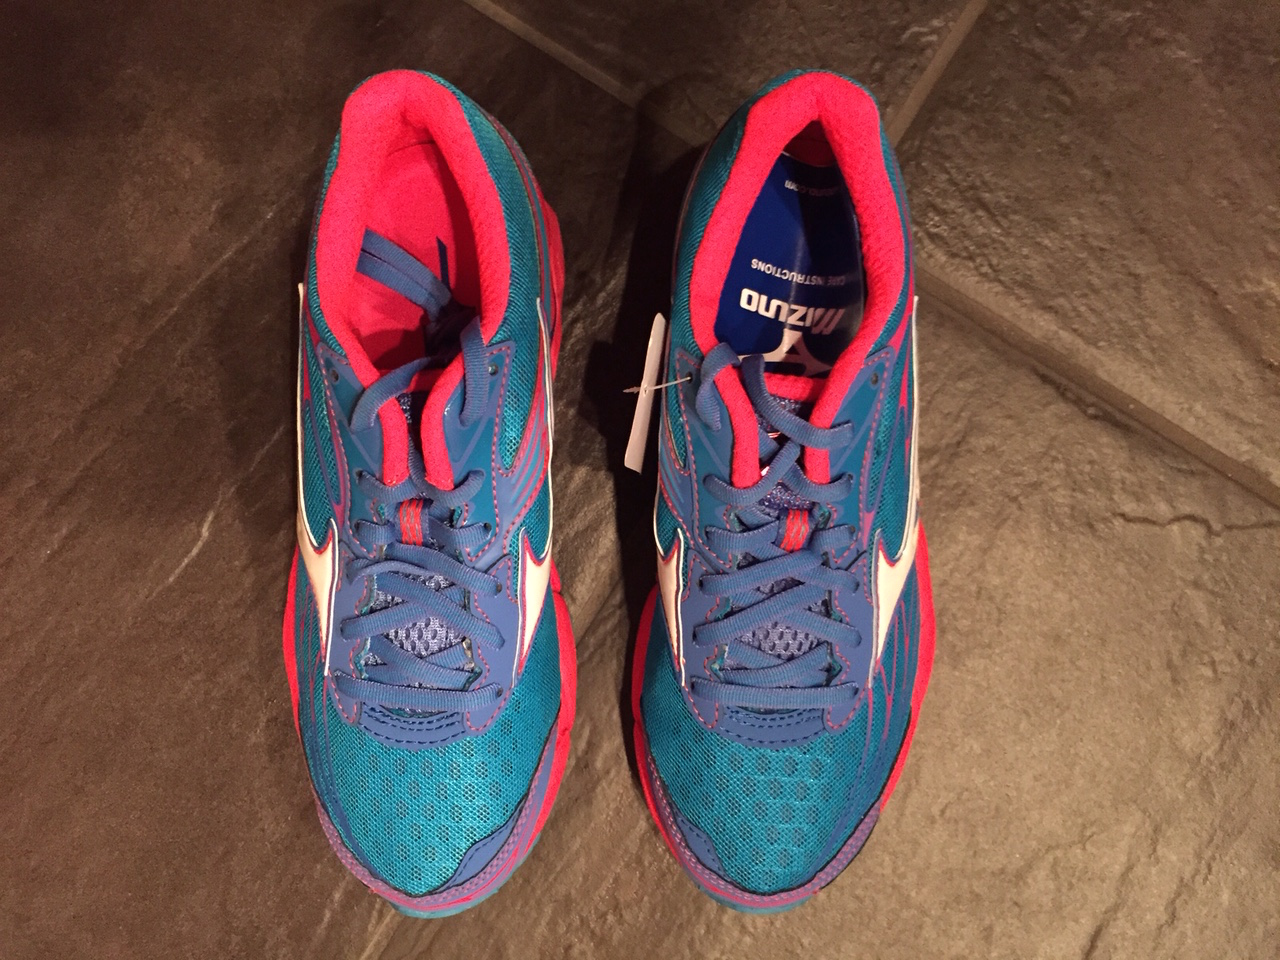 0c6e1e9e98 Racing Stripes: Mizuno Wave Catalyst Review